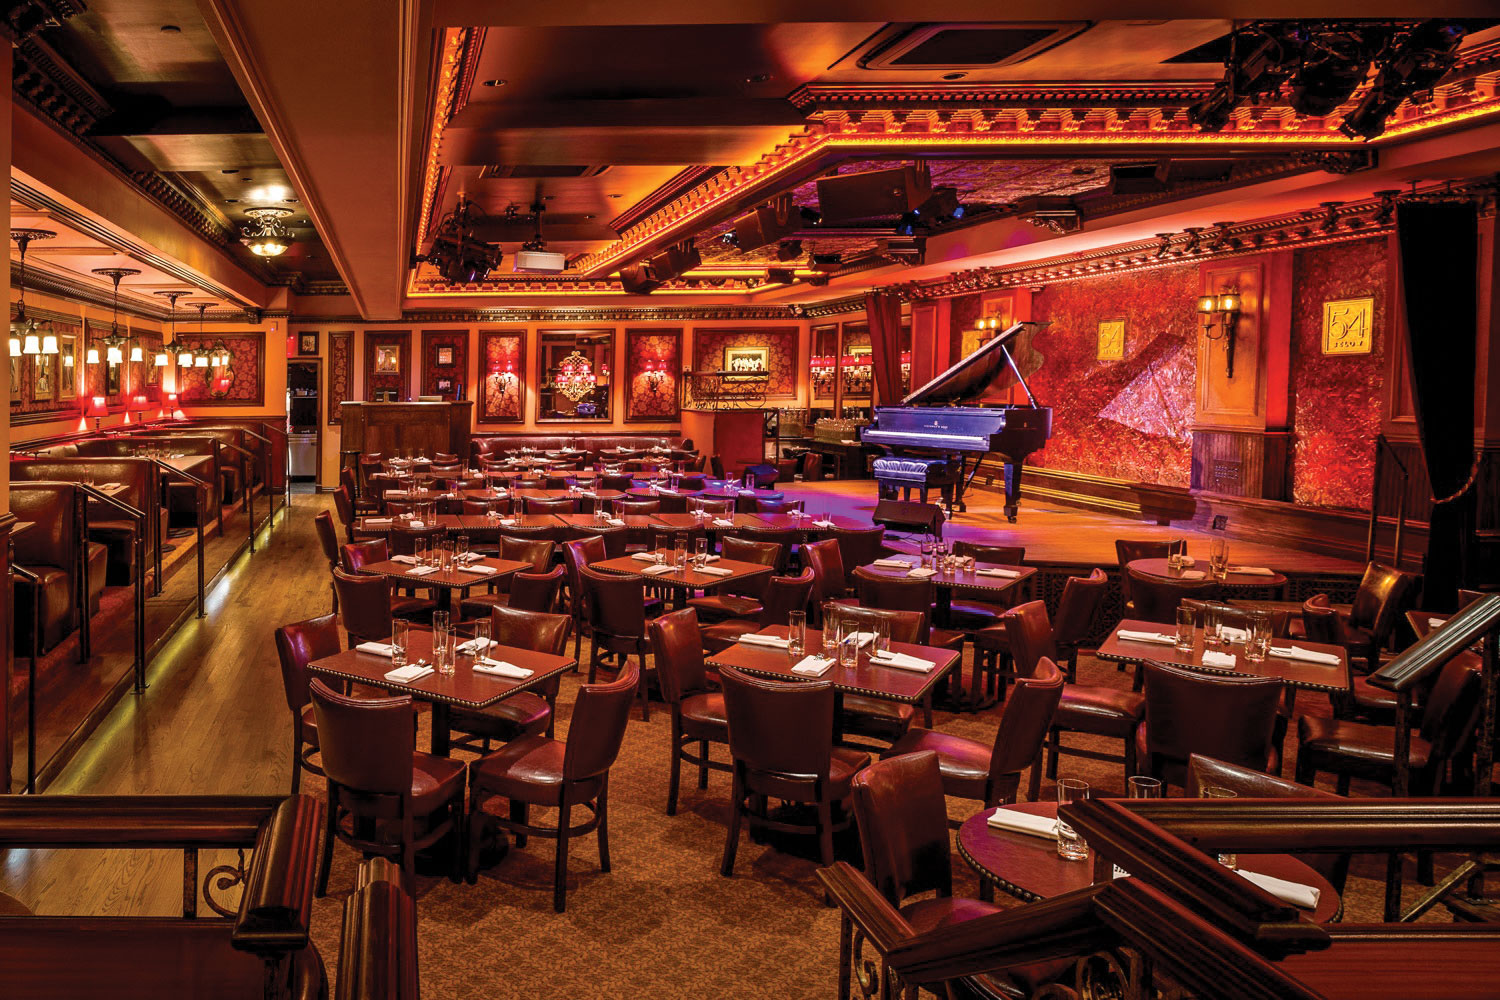 54 Below in New York City is a state-of-the-art nightclub located directly beneath the world-famous Studio 54.